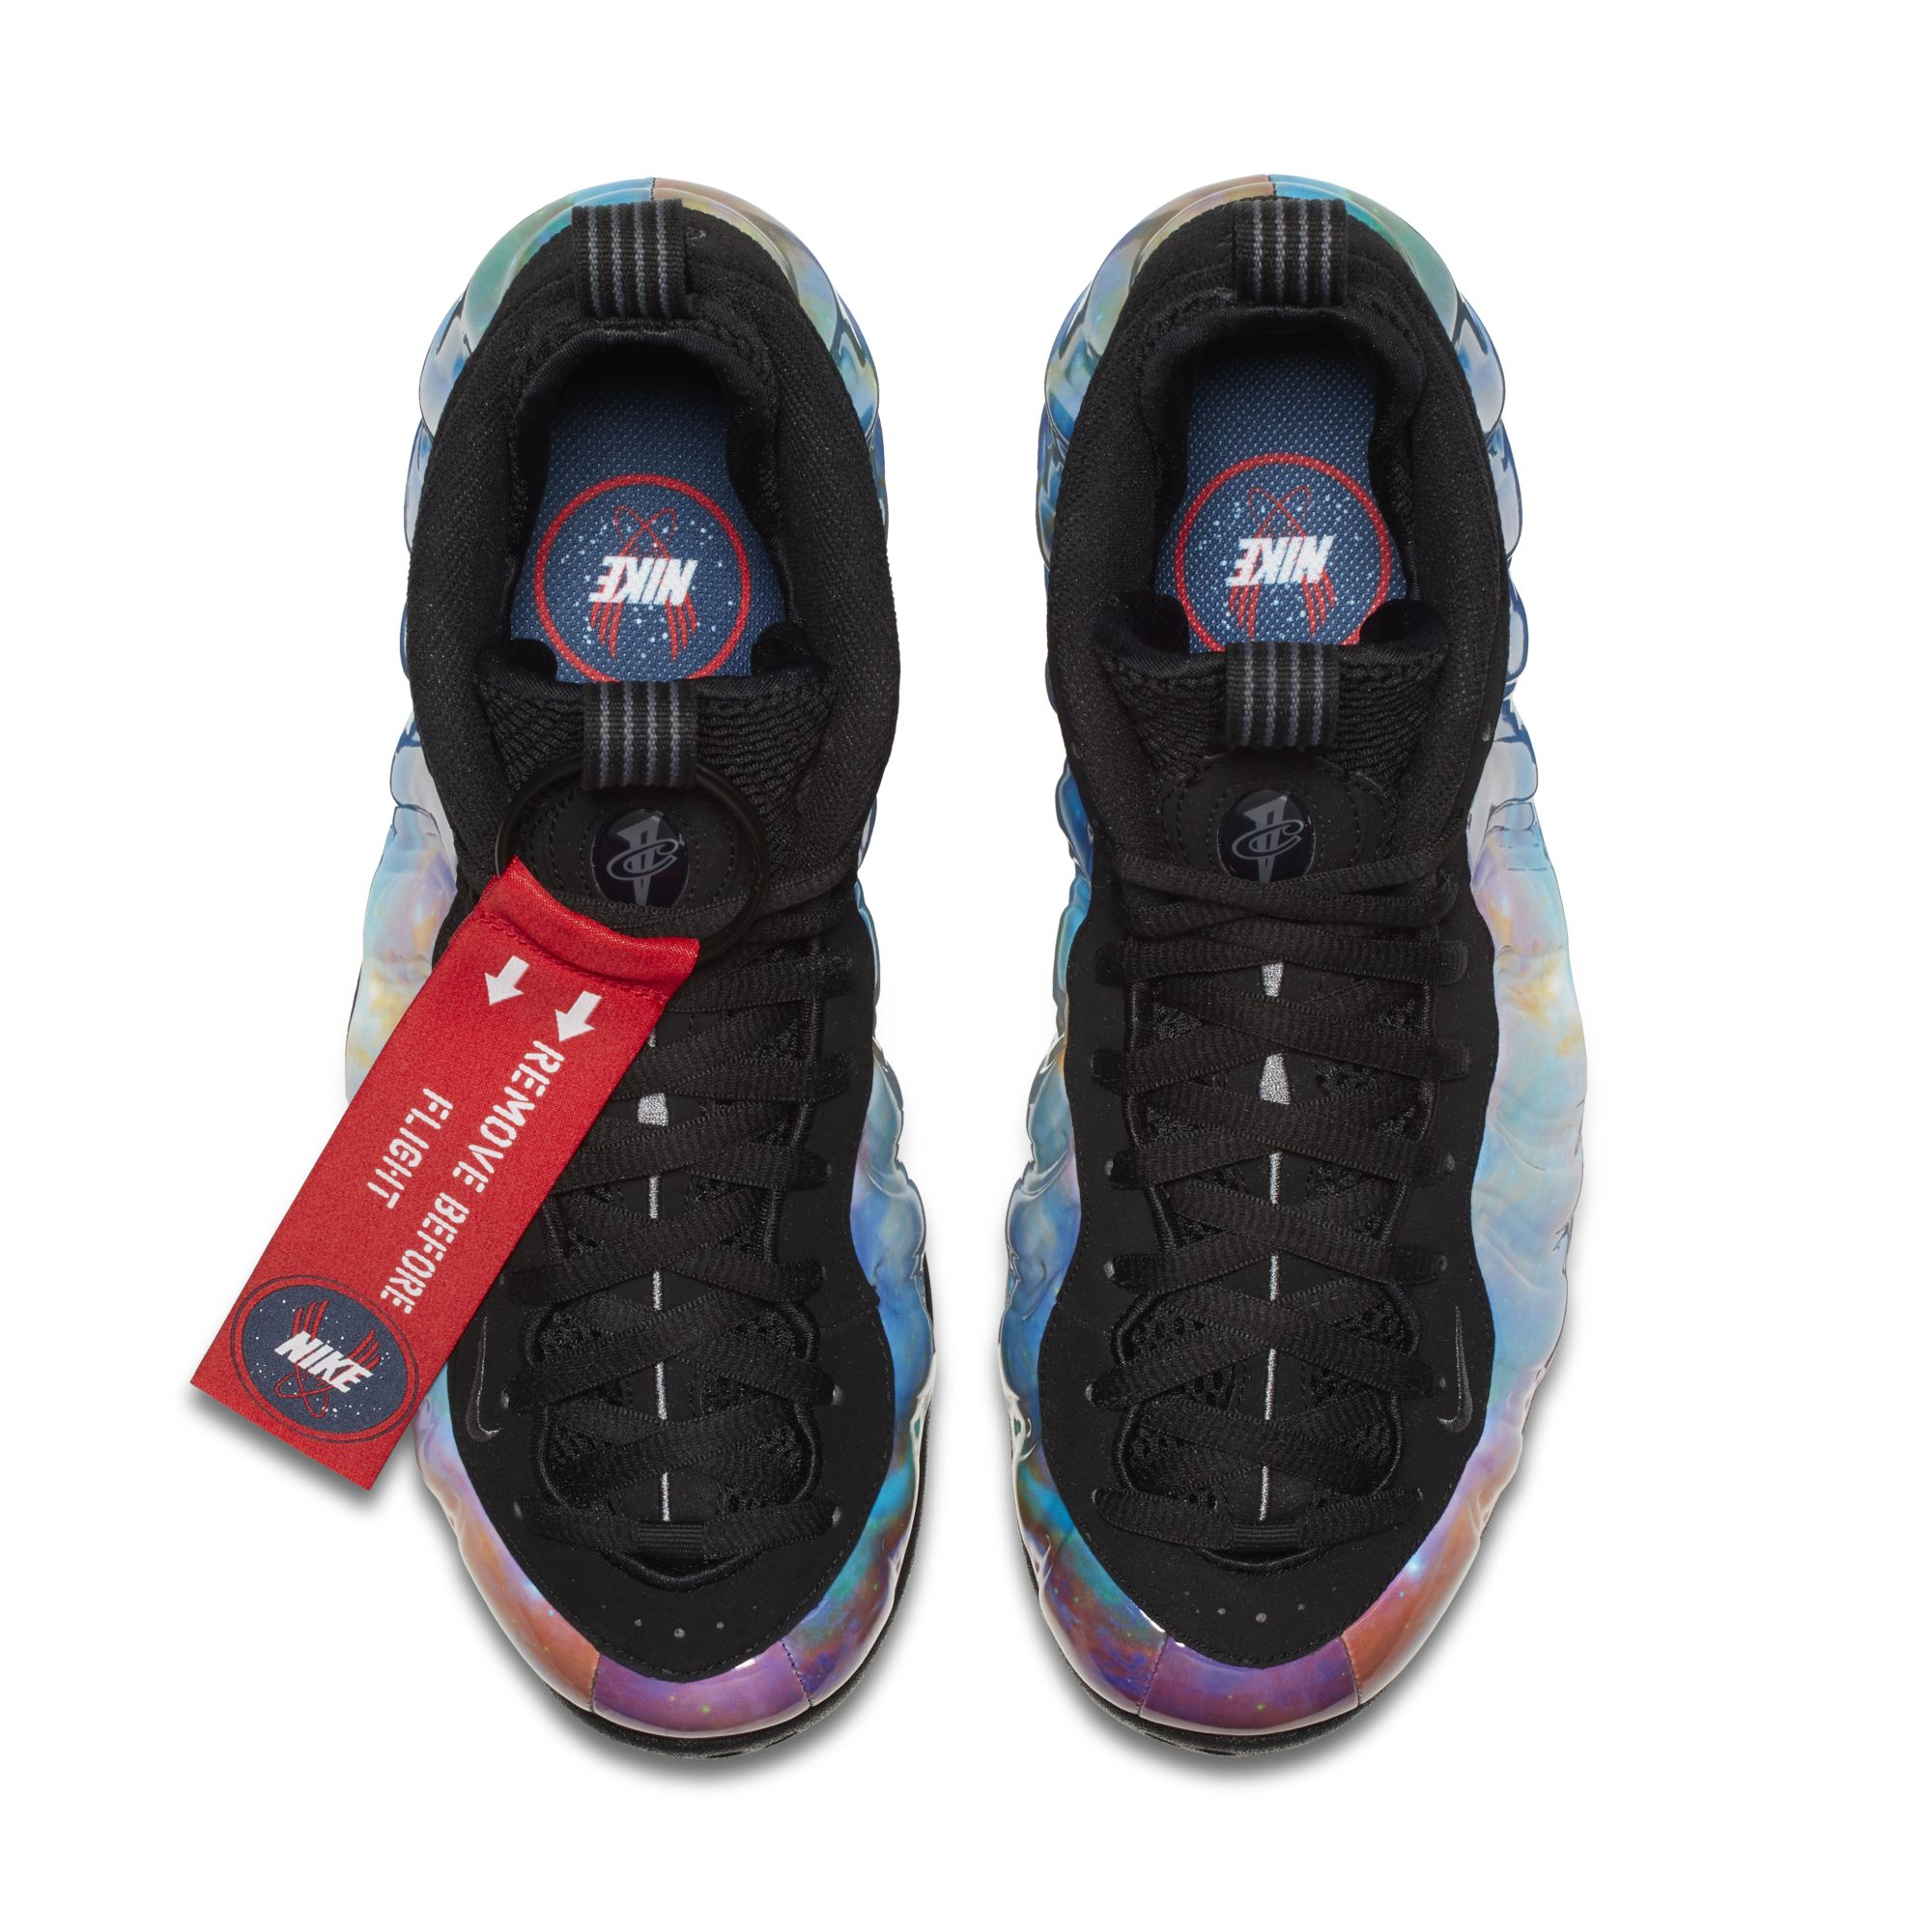 a84b4d1a487 Nike Air Foamposite One XX QS nebula alternate galaxy 1 - WearTesters